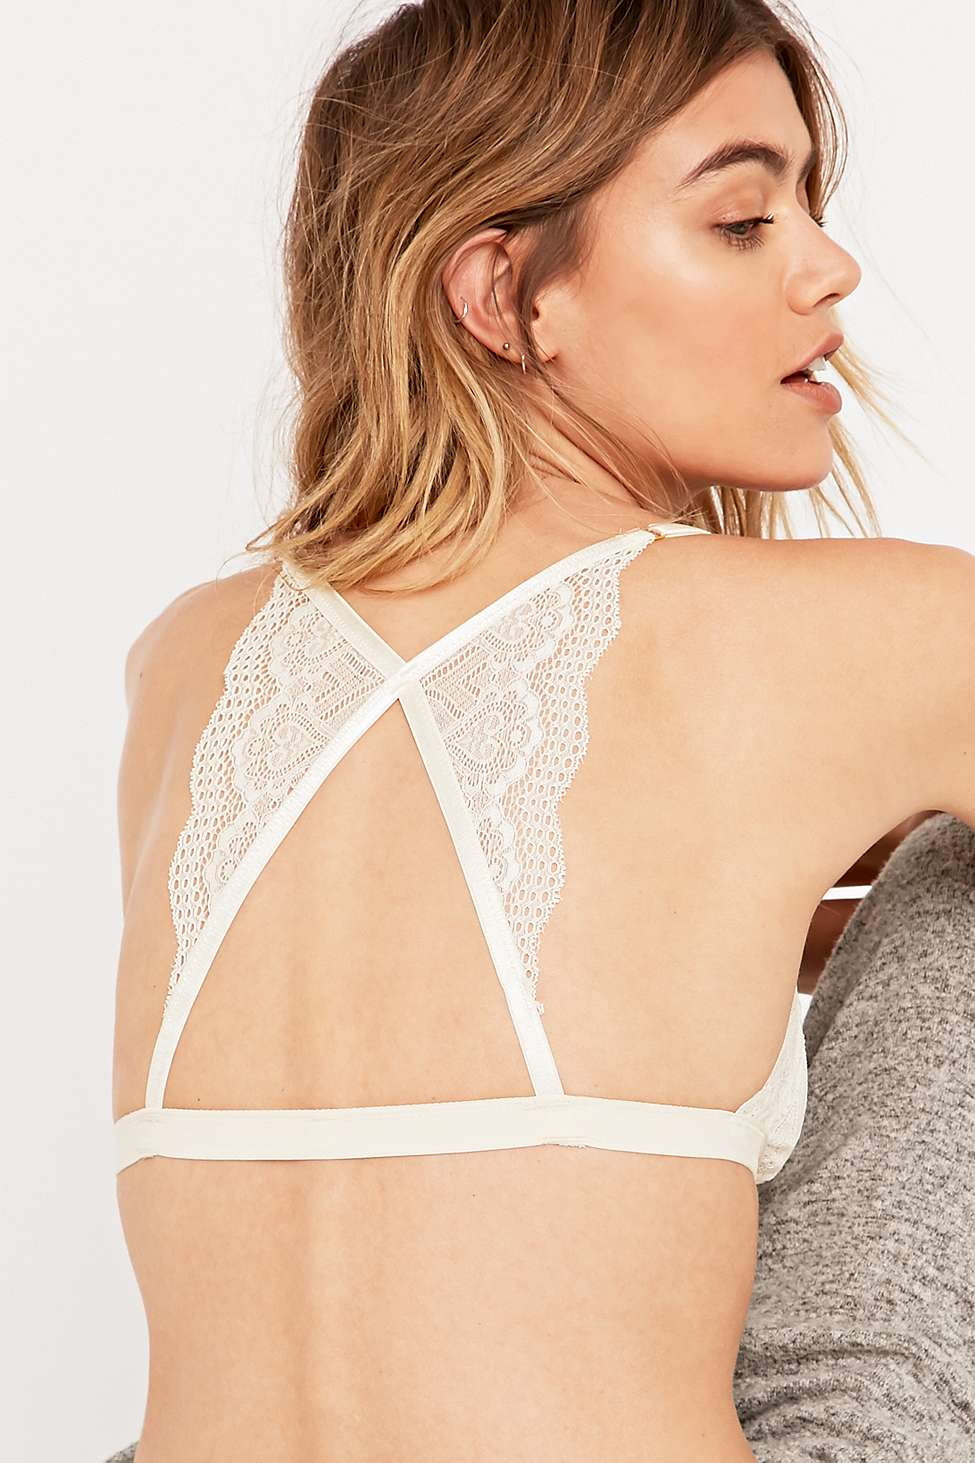 6512fe2fcd259 Urban Outfitters Front Clasp Ivory Lace Bralette in Natural - Lyst